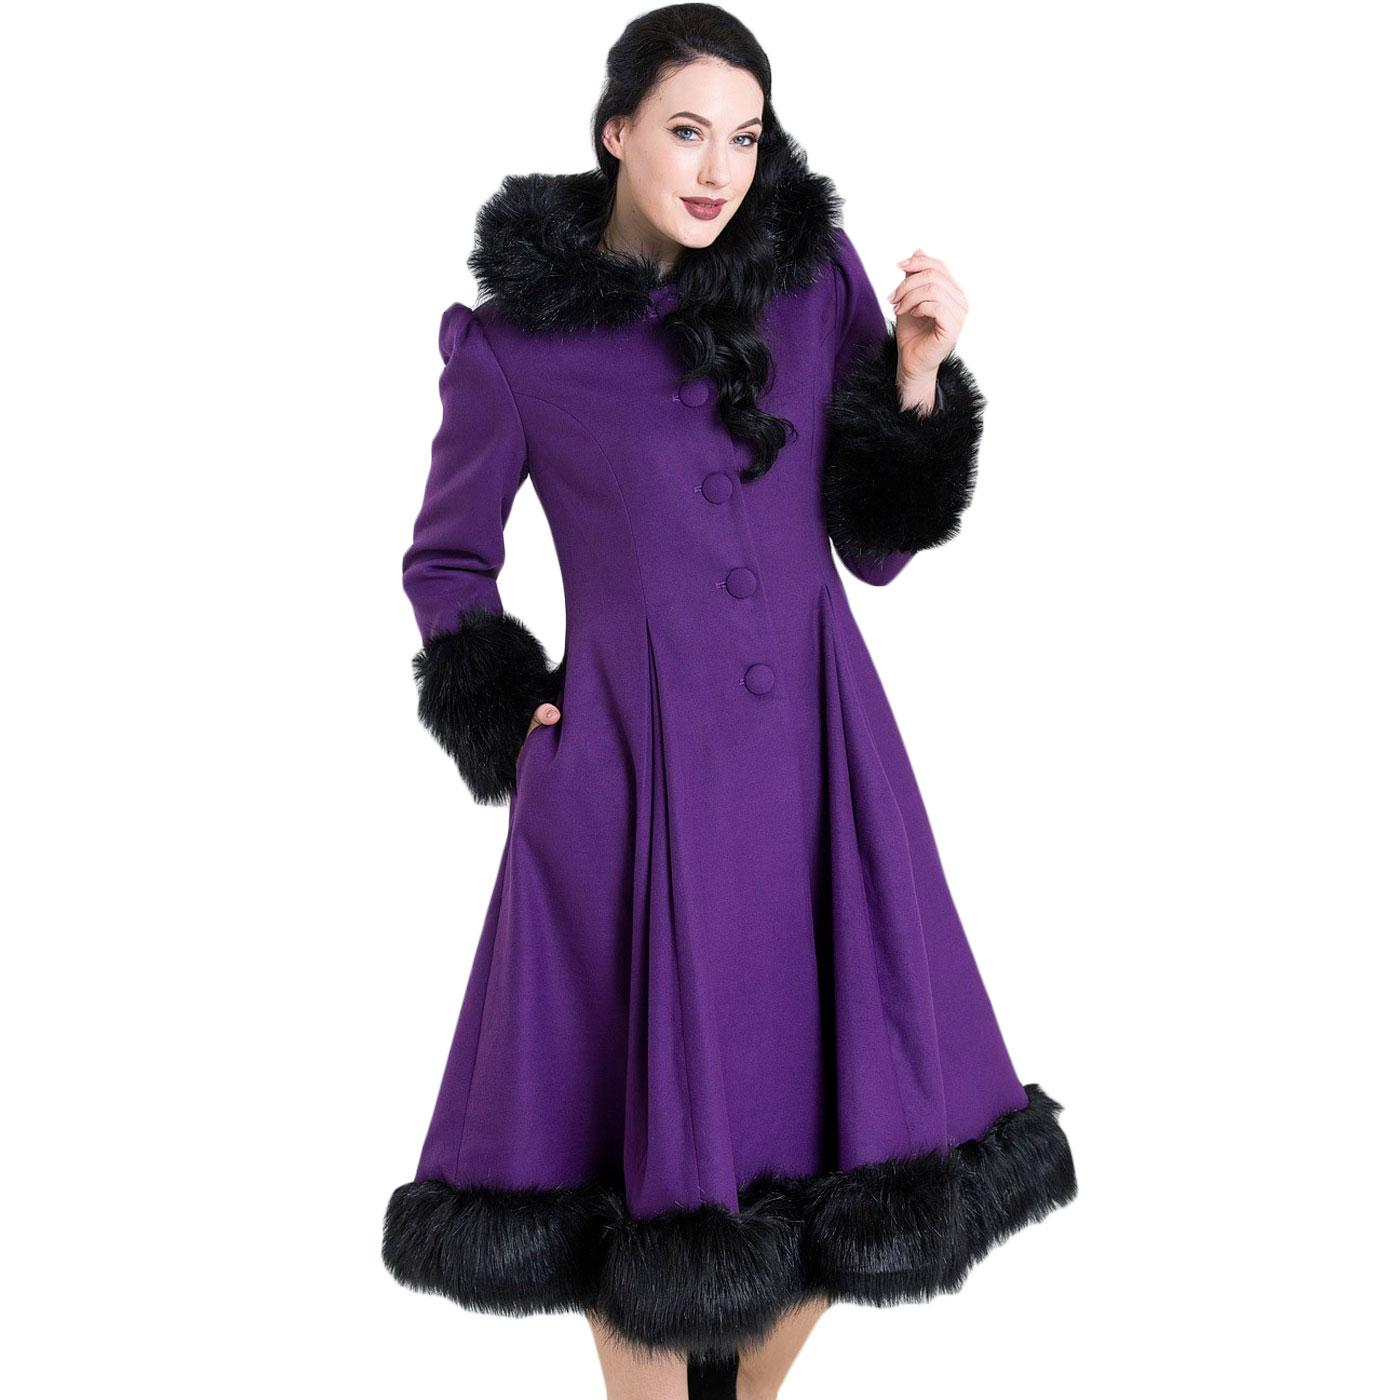 Elvira HELL BUNNY Faux Fur Vintage Coat In Purple